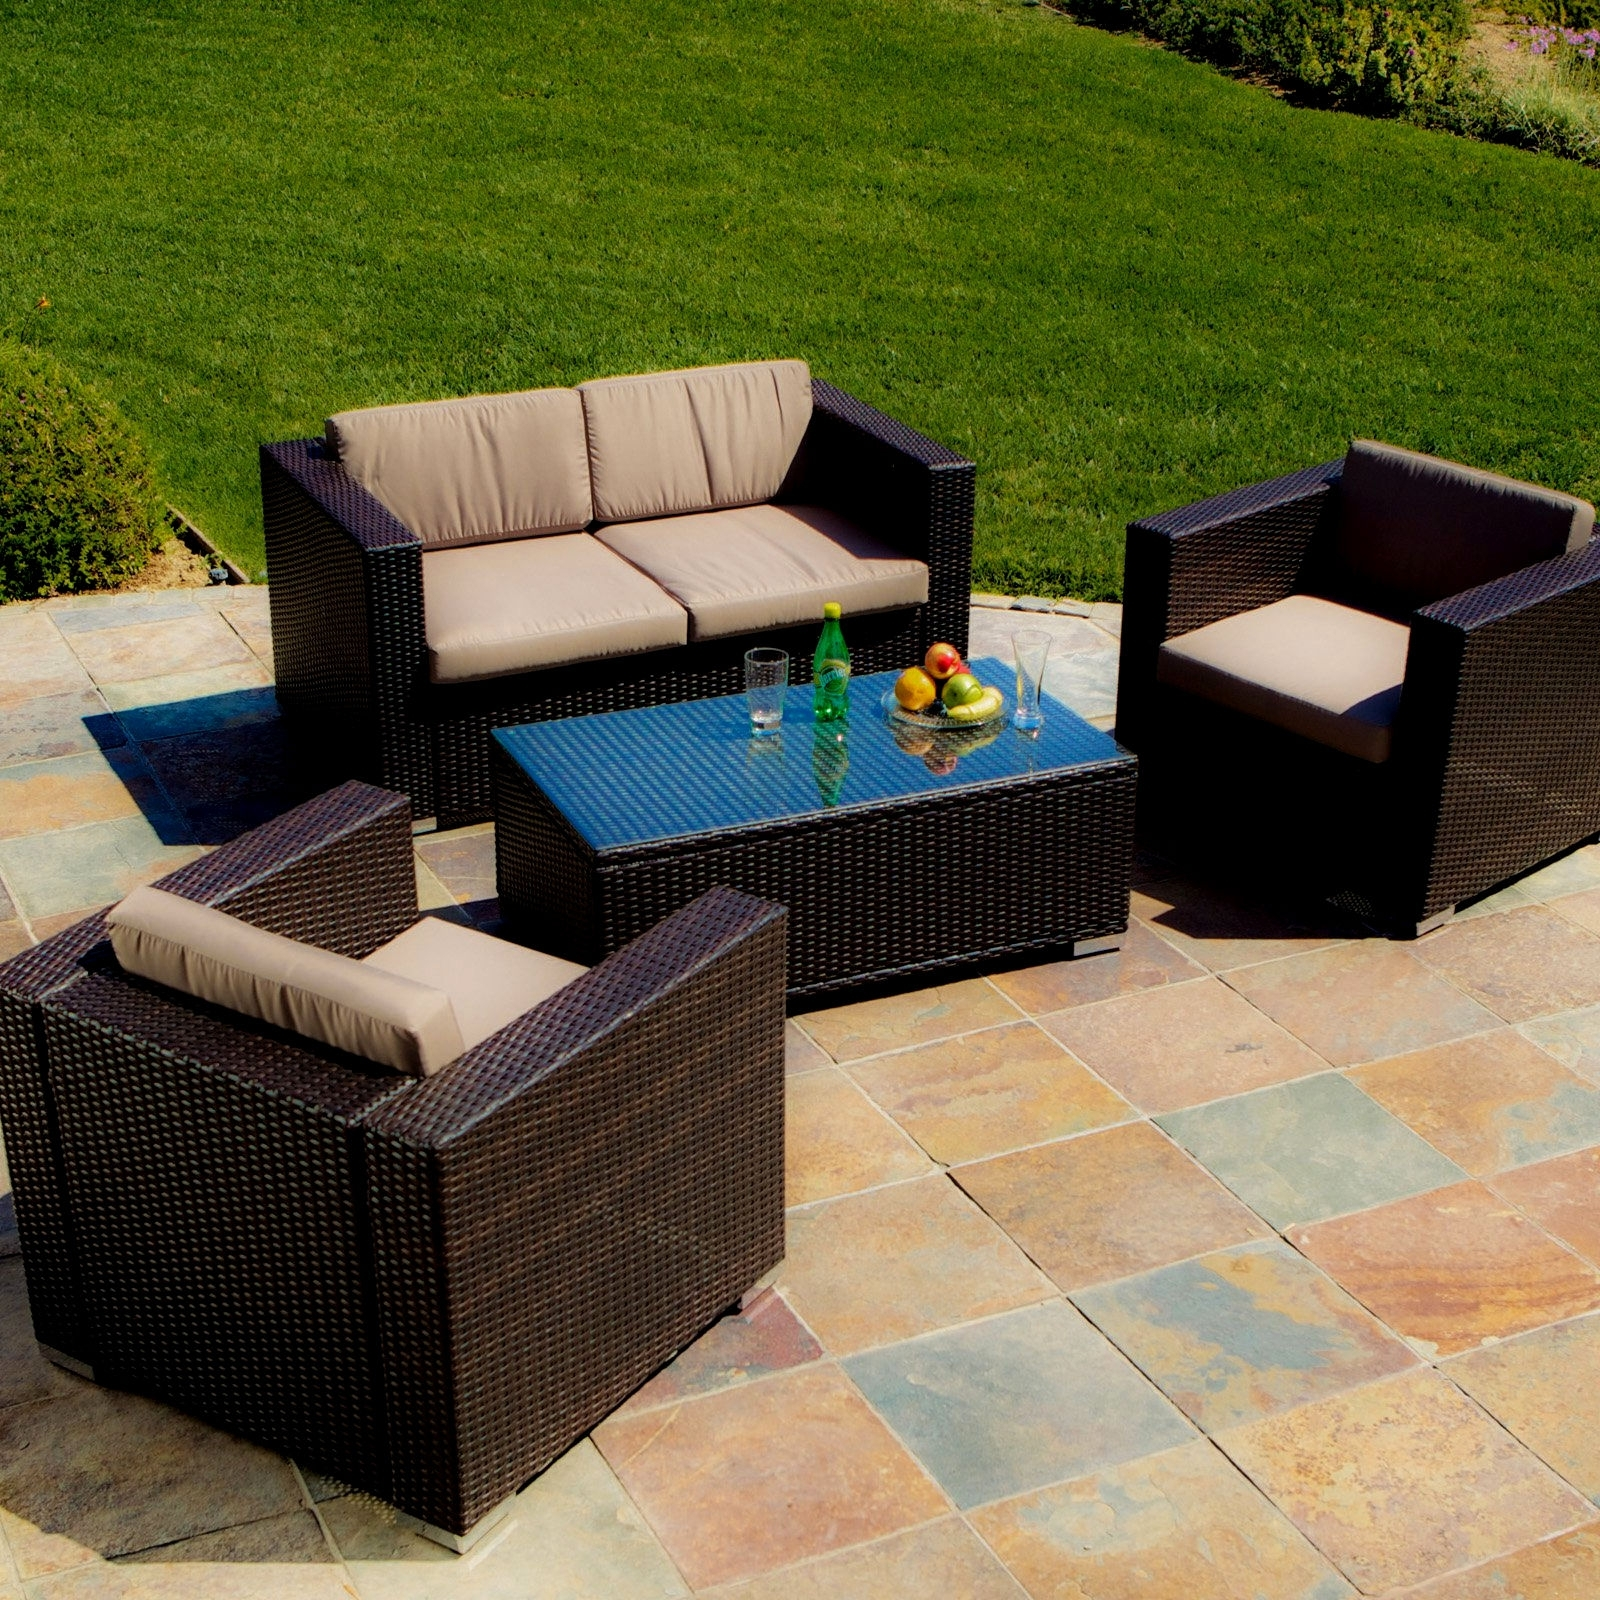 Christopher Knight Wicker Patio Furniture Outdoor Patio Decoration With Outdoor Sofa Chairs (Image 4 of 15)